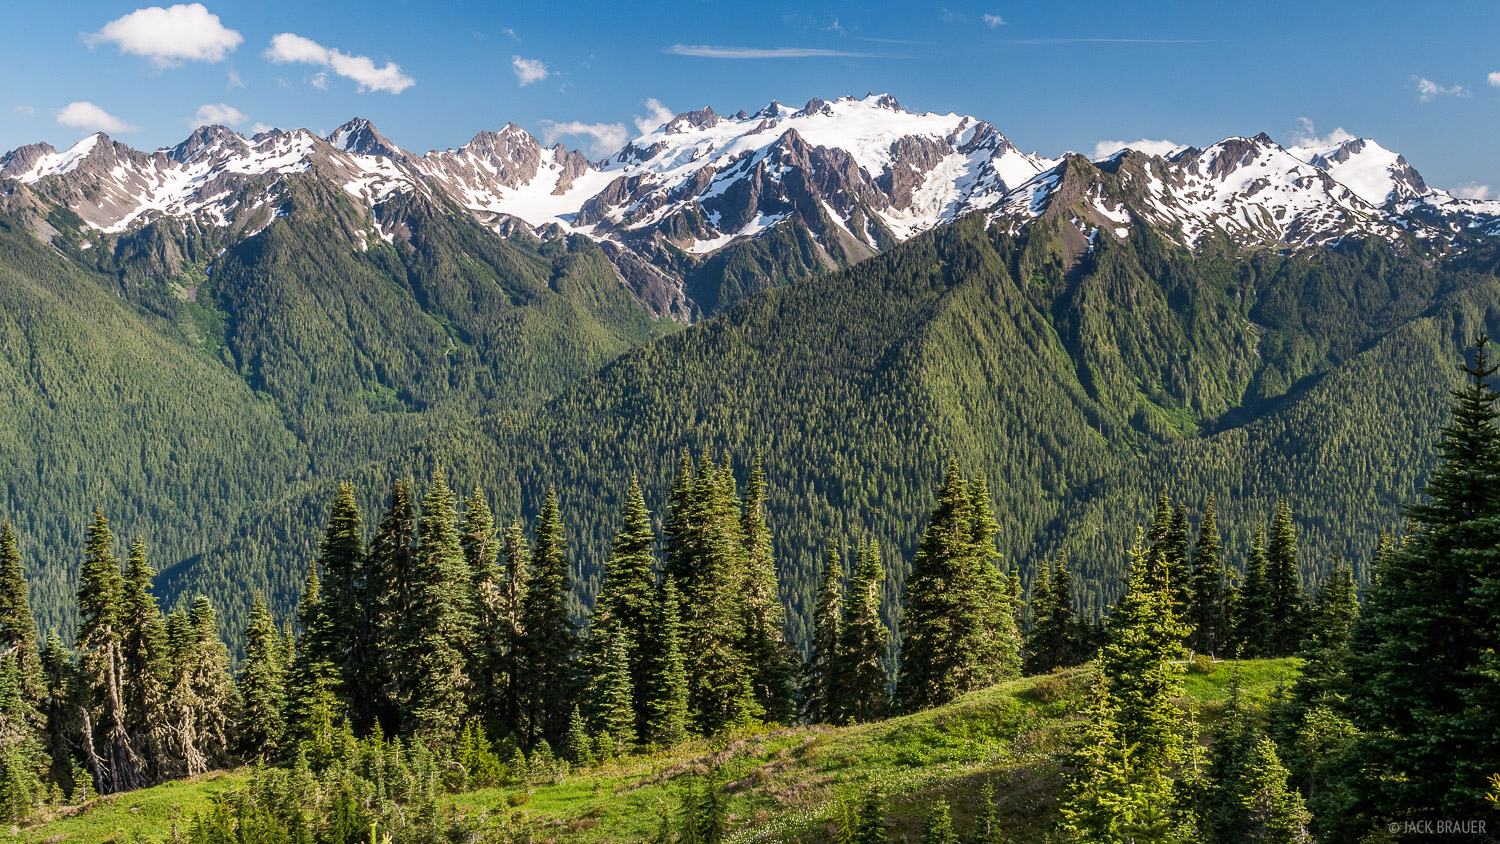 Mount Olympus (7,980 ft / 2,432 m) as seen from the High Divide, Olympic National Park, Washington.